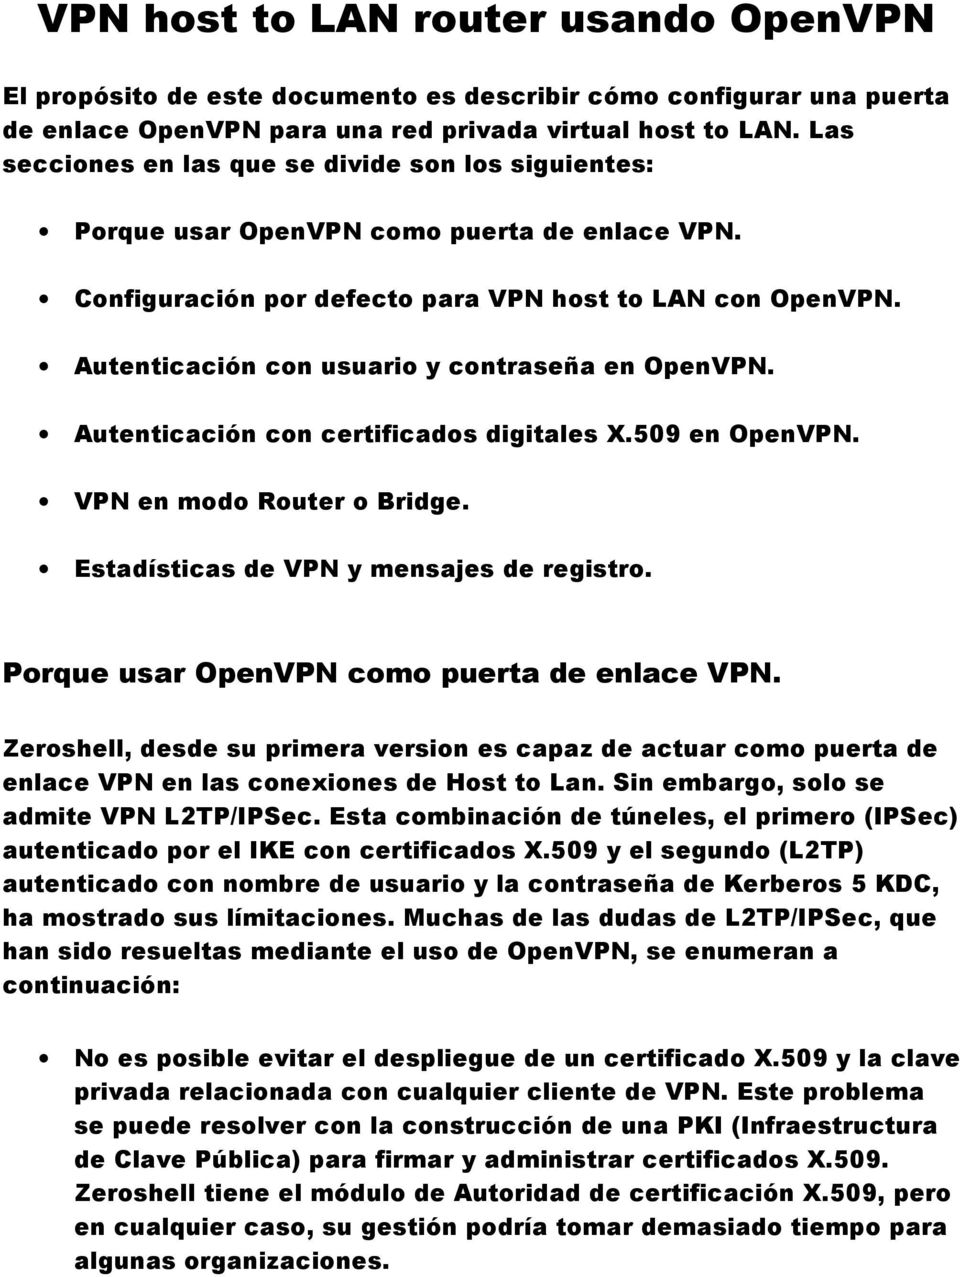 Autenticación con usuario y contraseña en OpenVPN. Autenticación con certificados digitales X.509 en OpenVPN. VPN en modo Router o Bridge. Estadísticas de VPN y mensajes de registro.